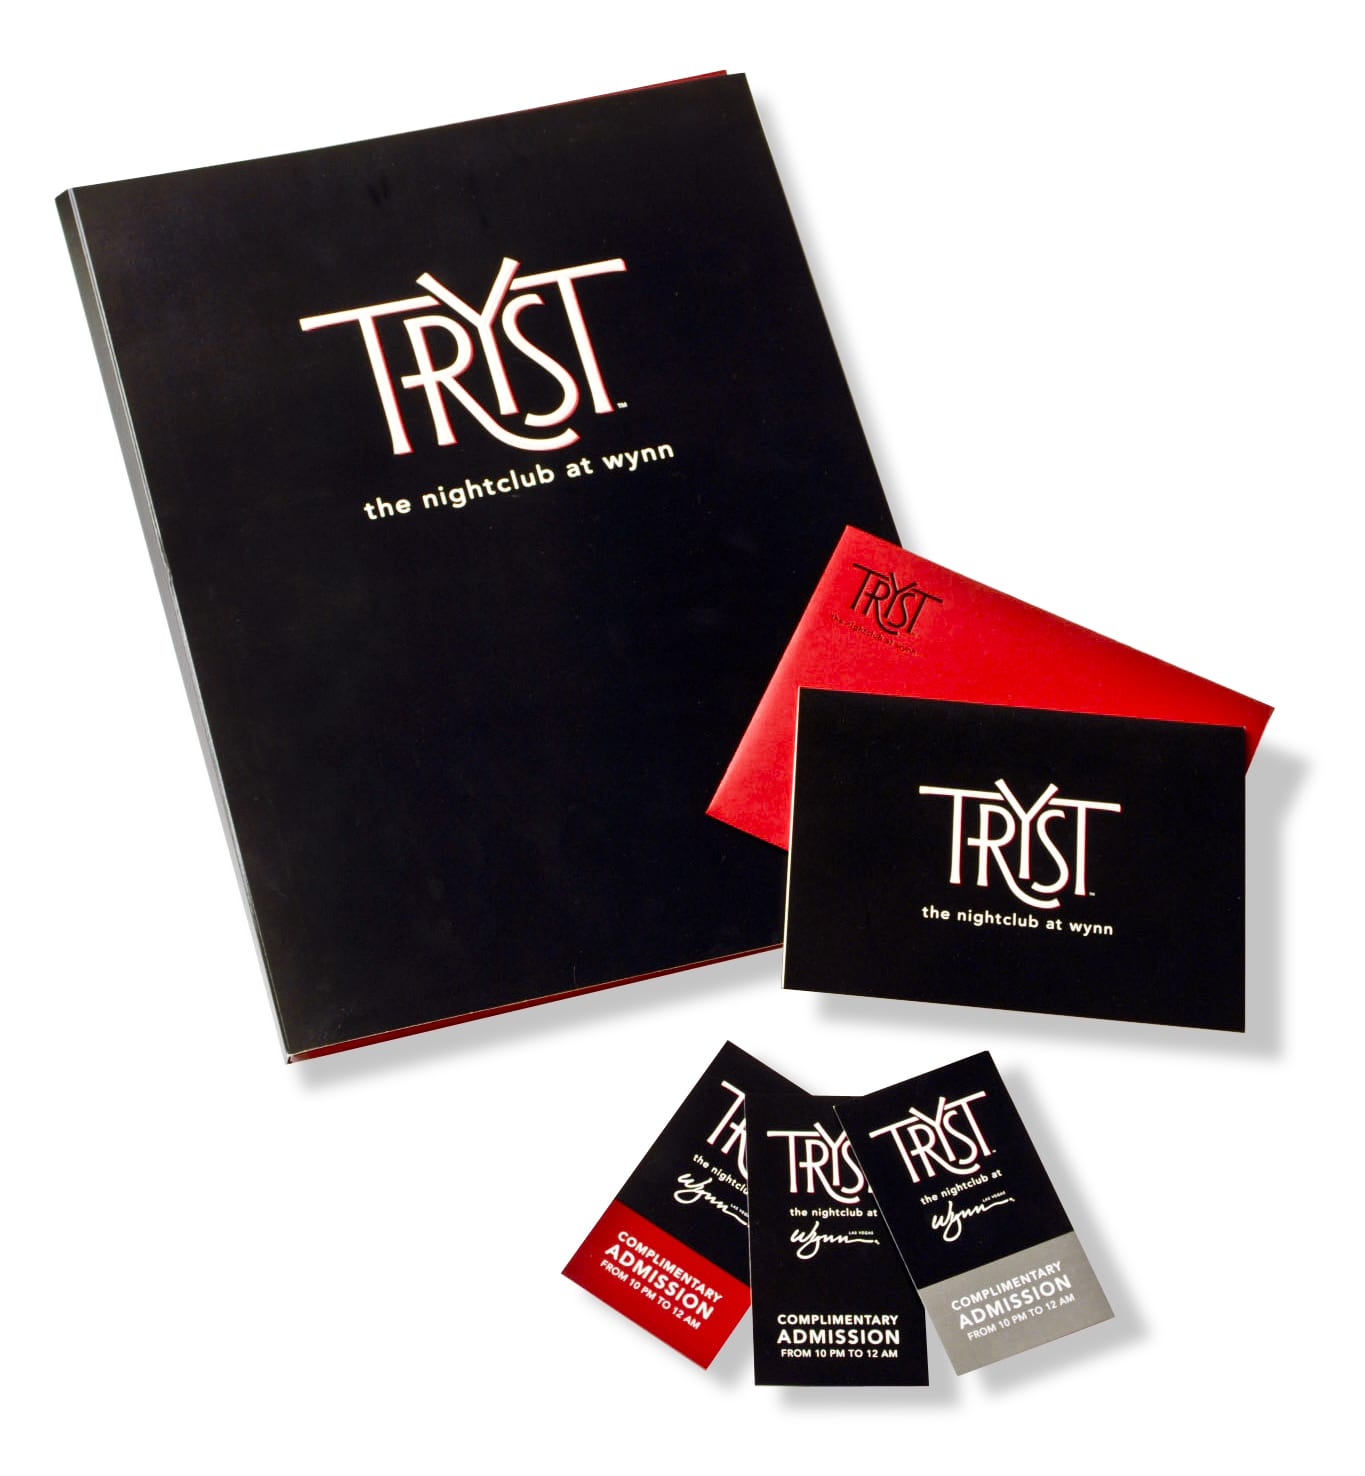 A group of Tryst nightclub branding featuring menus, business cards, and marketing.